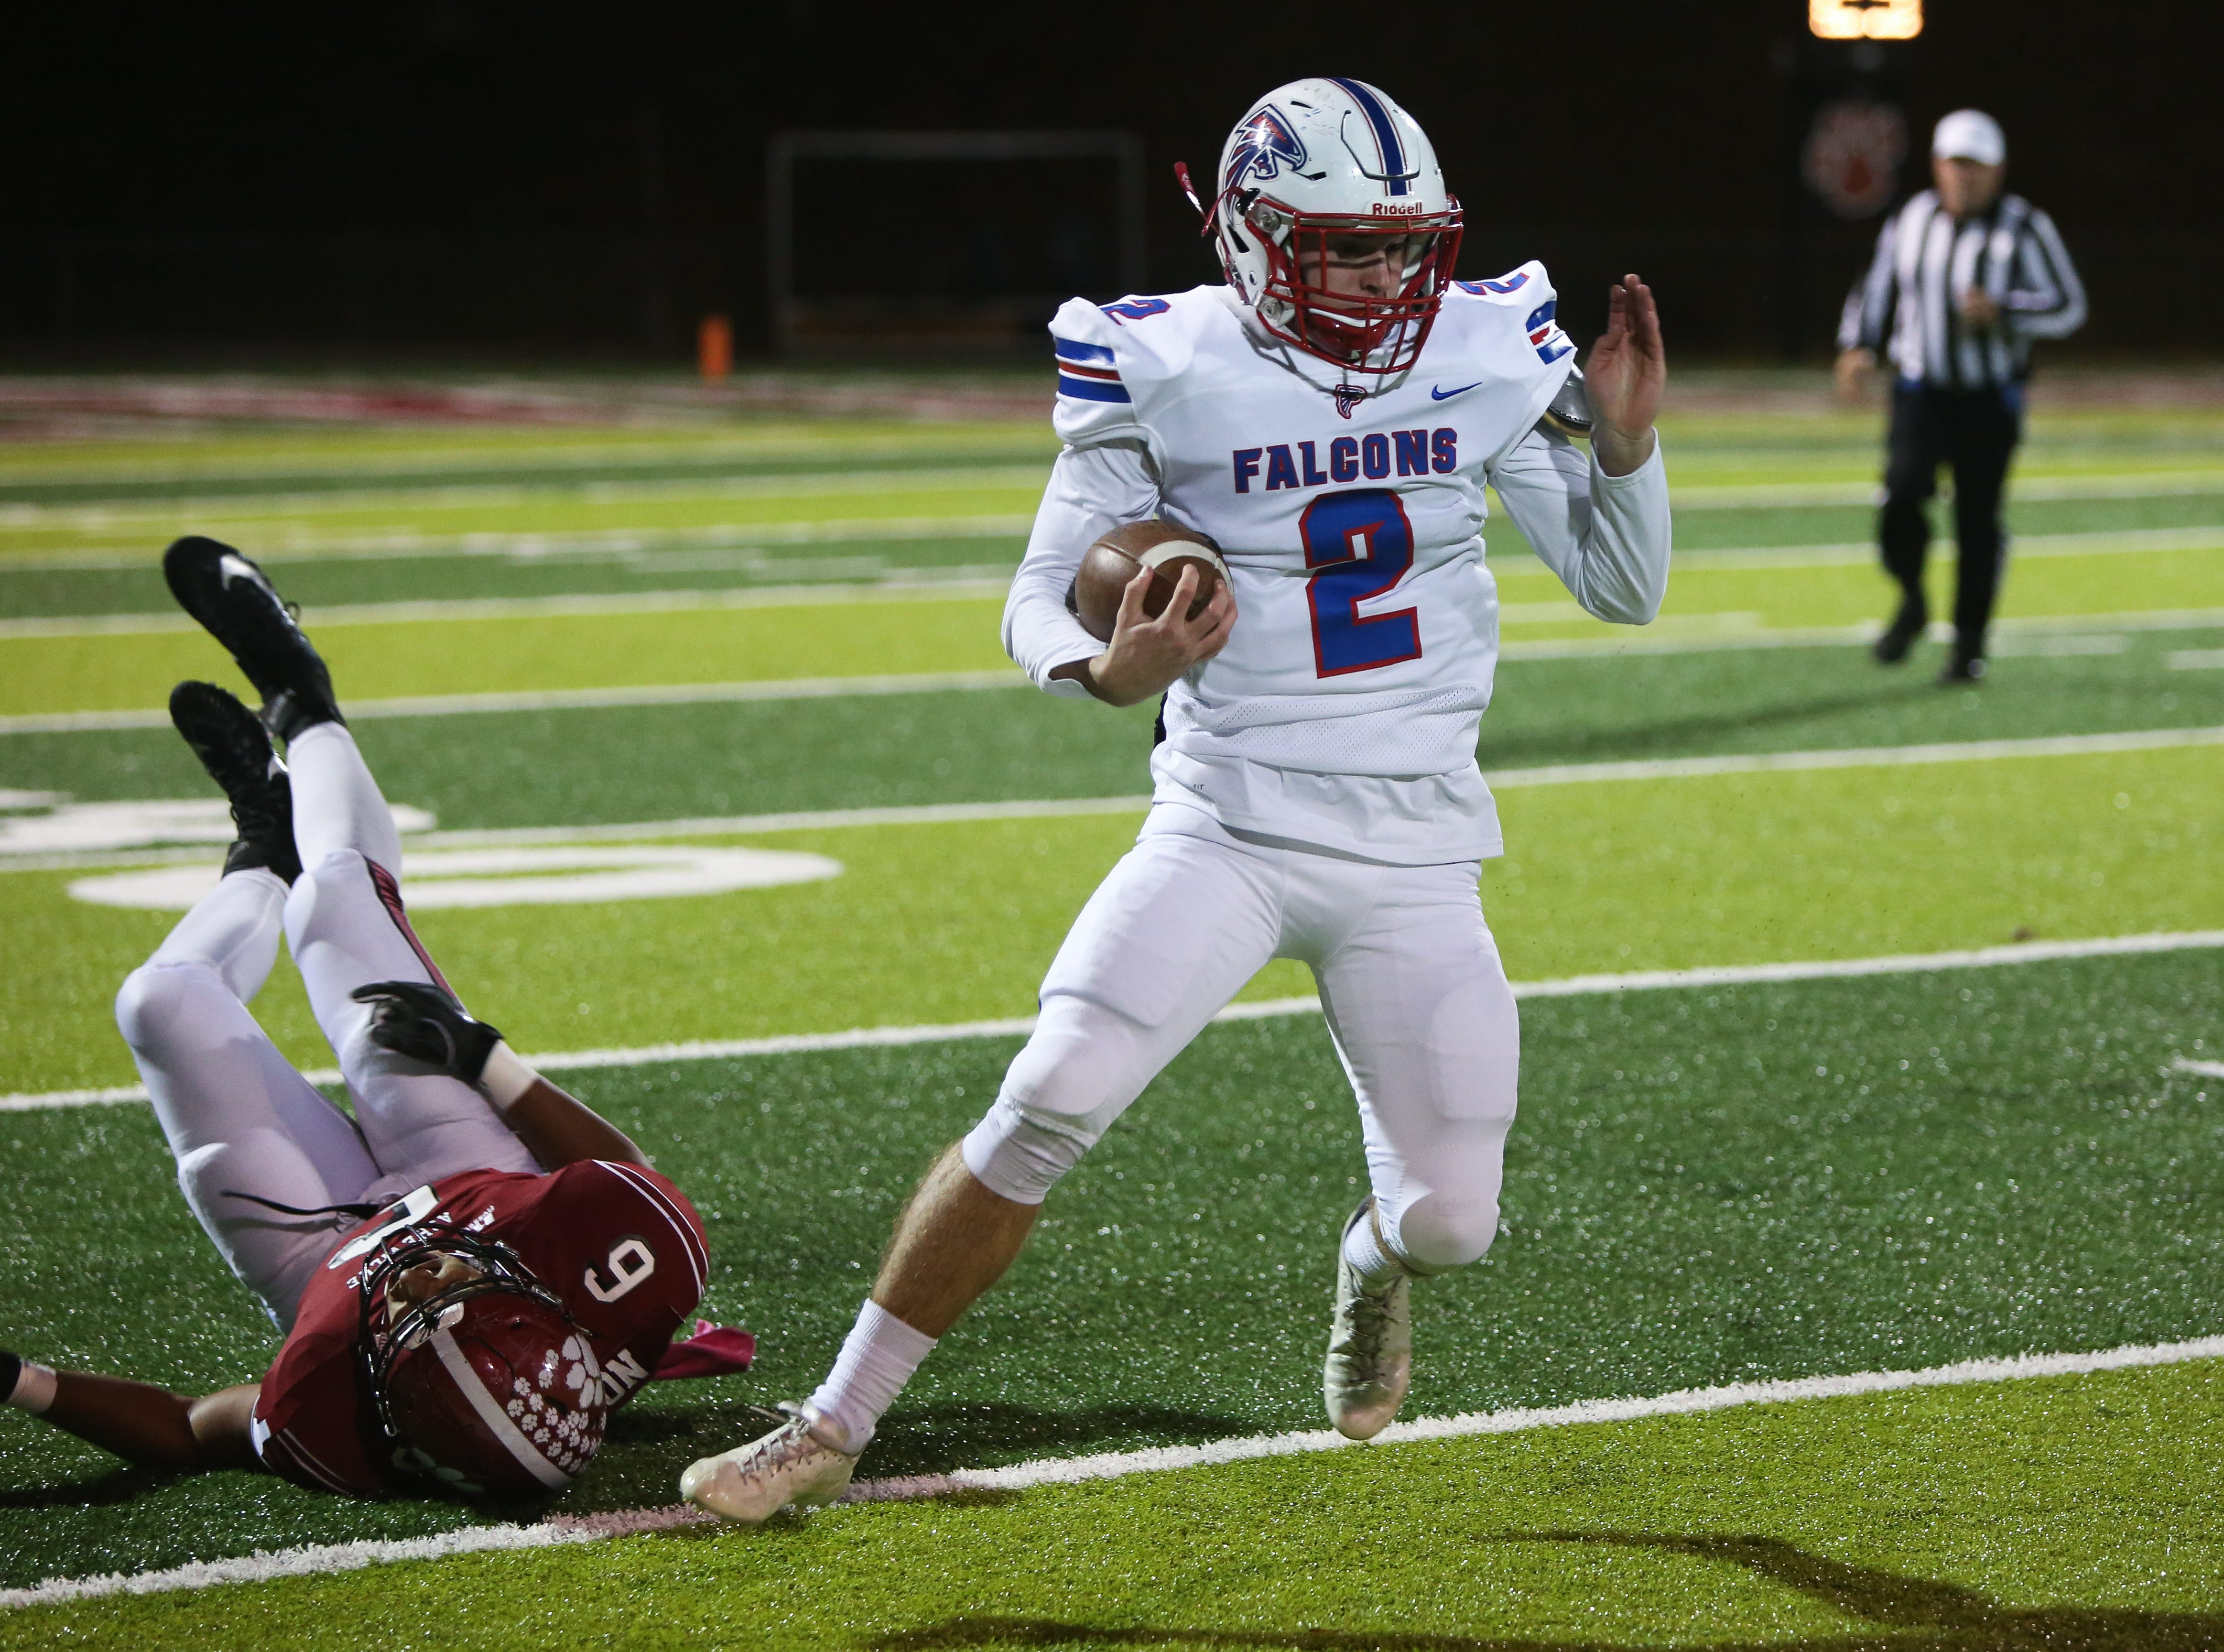 Asheville High faced off against West Henderson on Nov. 2, 2018 at Asheville.  Asheville took the win with a final score of 24-13.